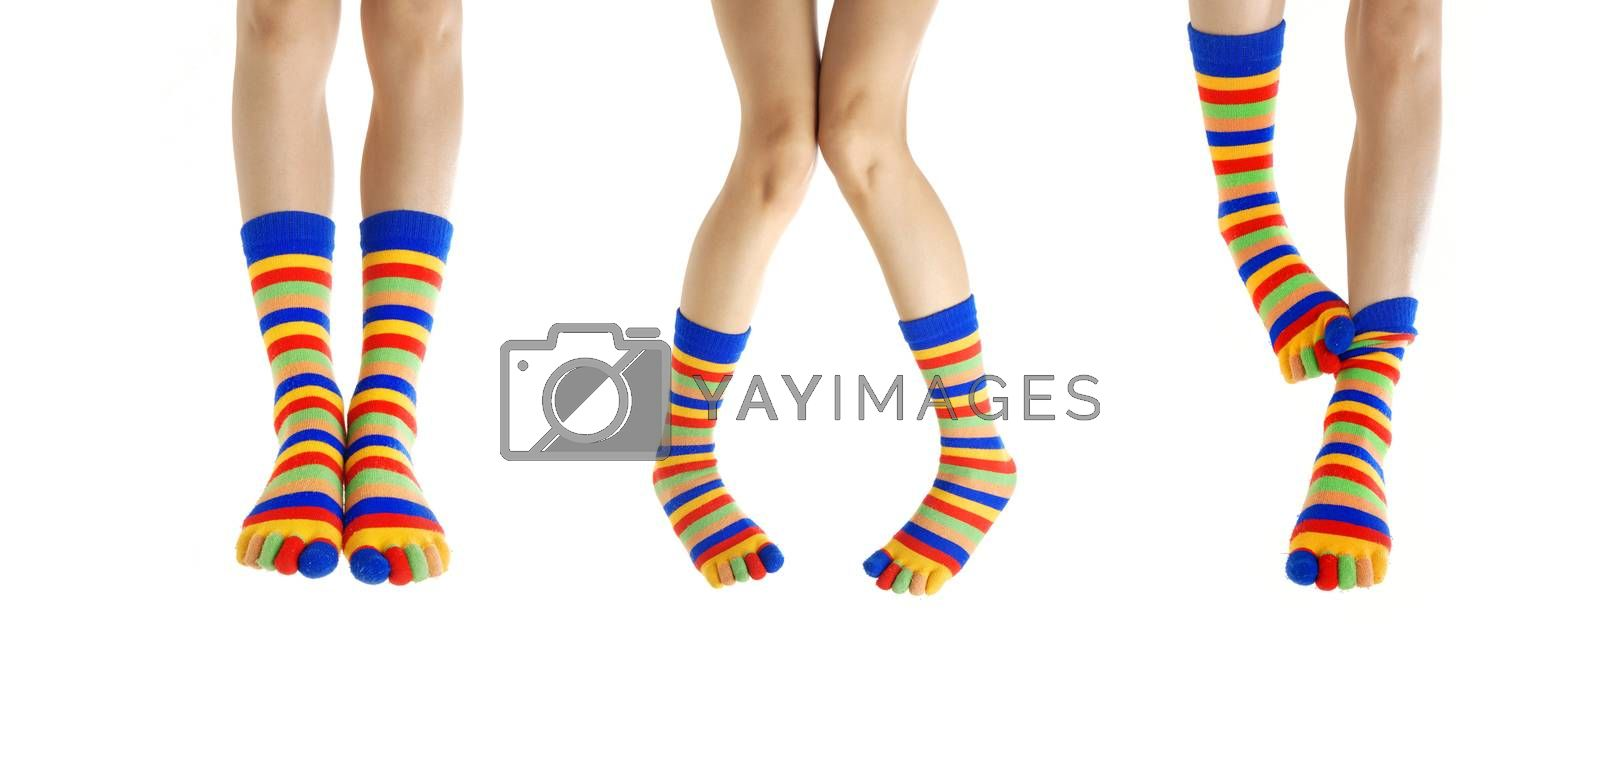 Three couples of woman legs in stripped socks